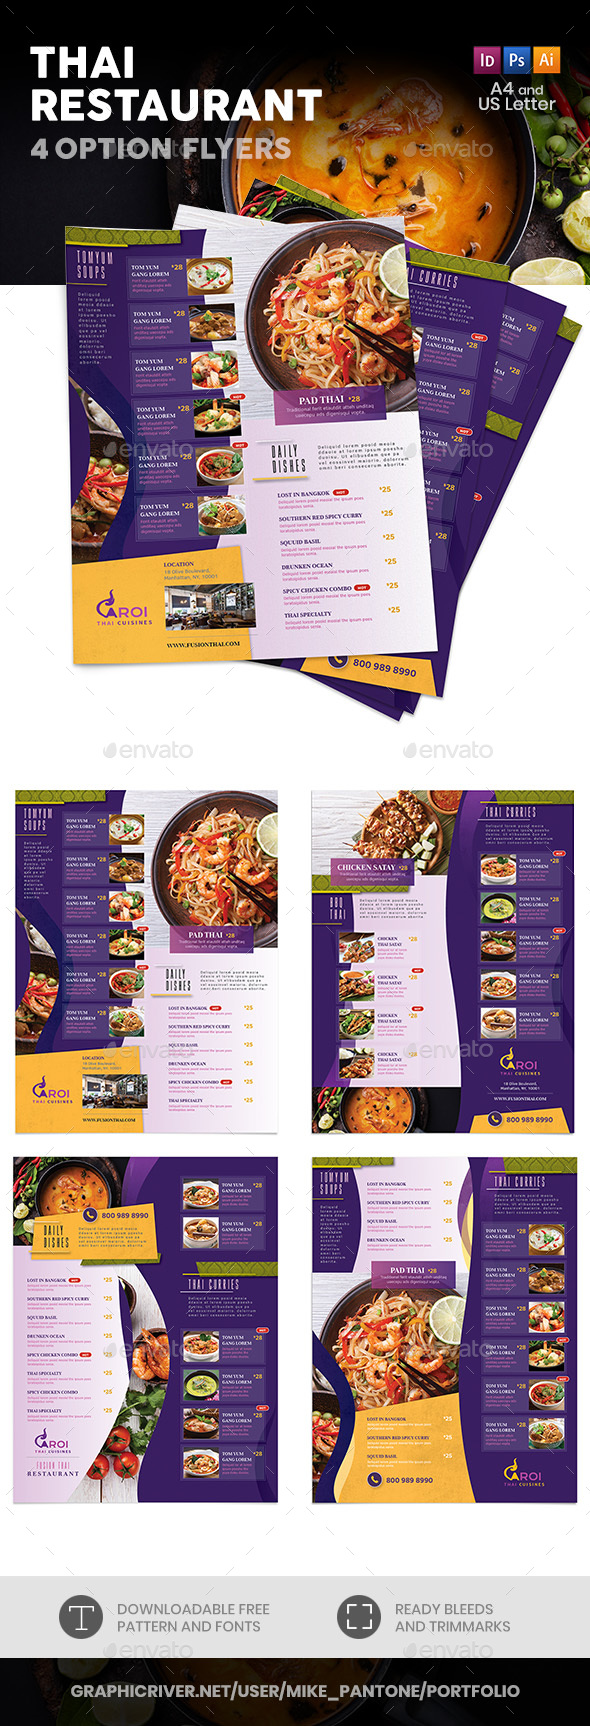 Thai Restaurant Menu Flyers 5  4 Options